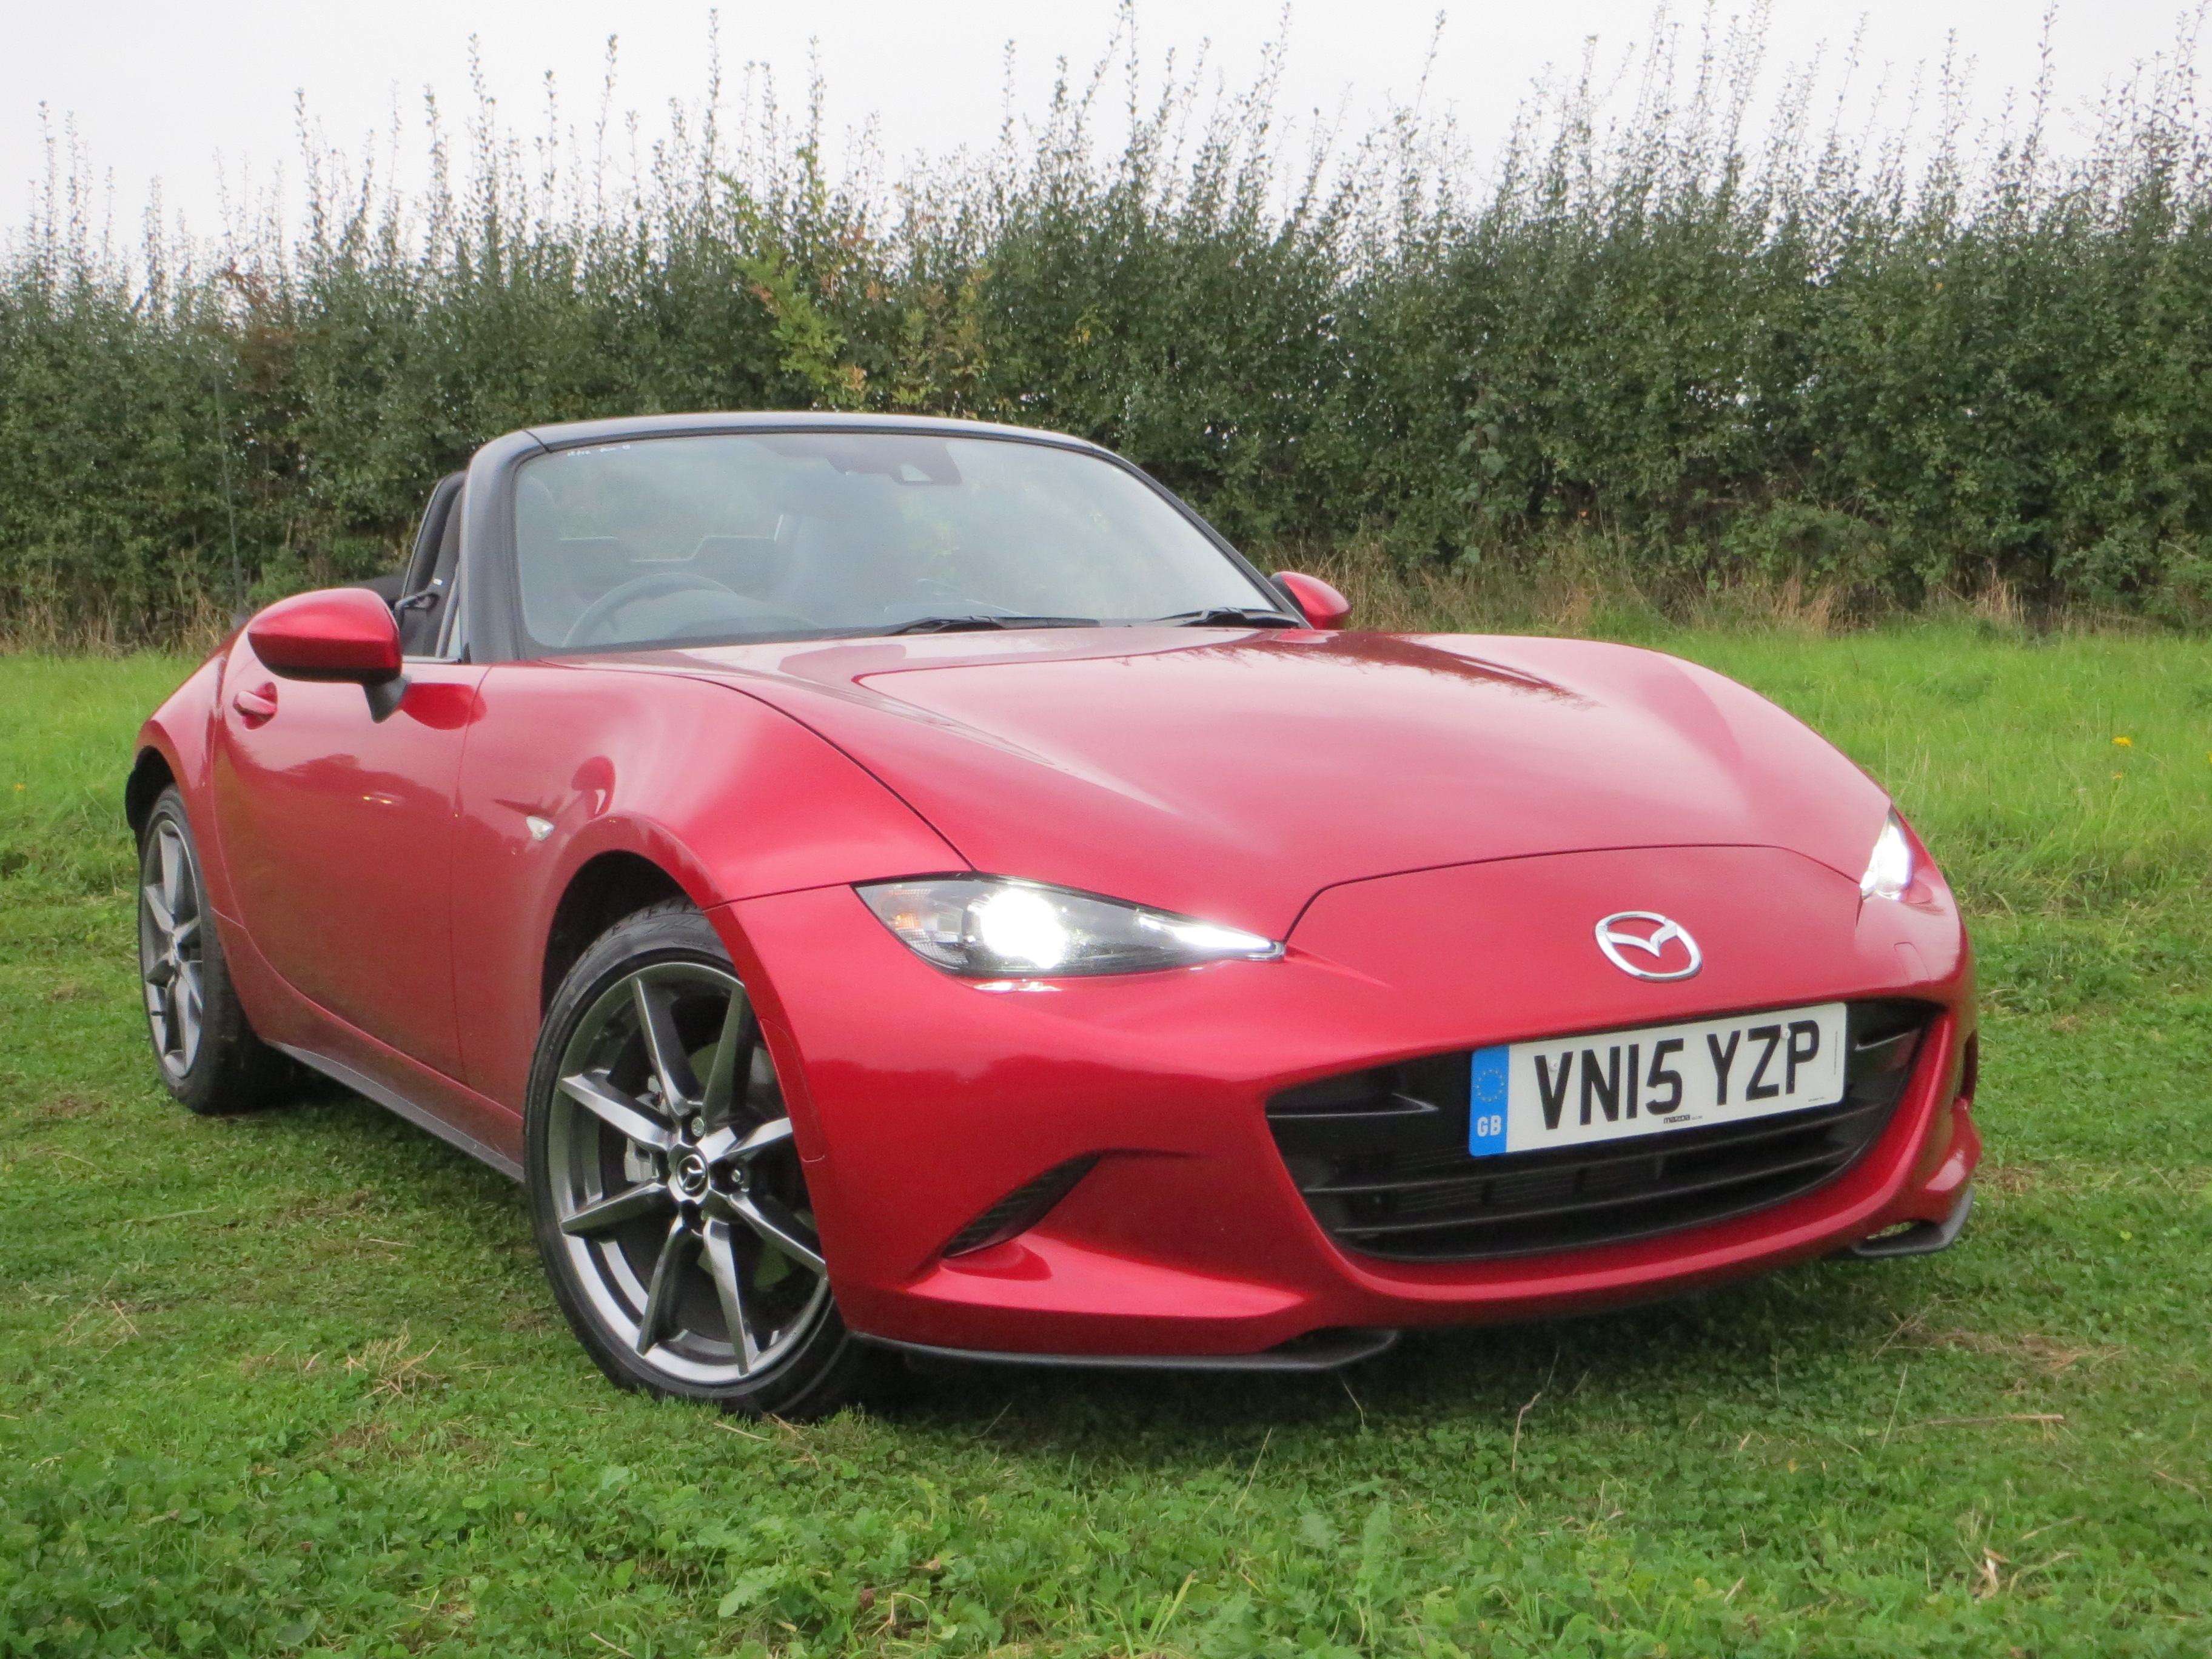 mazda mx 5 2 0 sport nav road test report and review. Black Bedroom Furniture Sets. Home Design Ideas